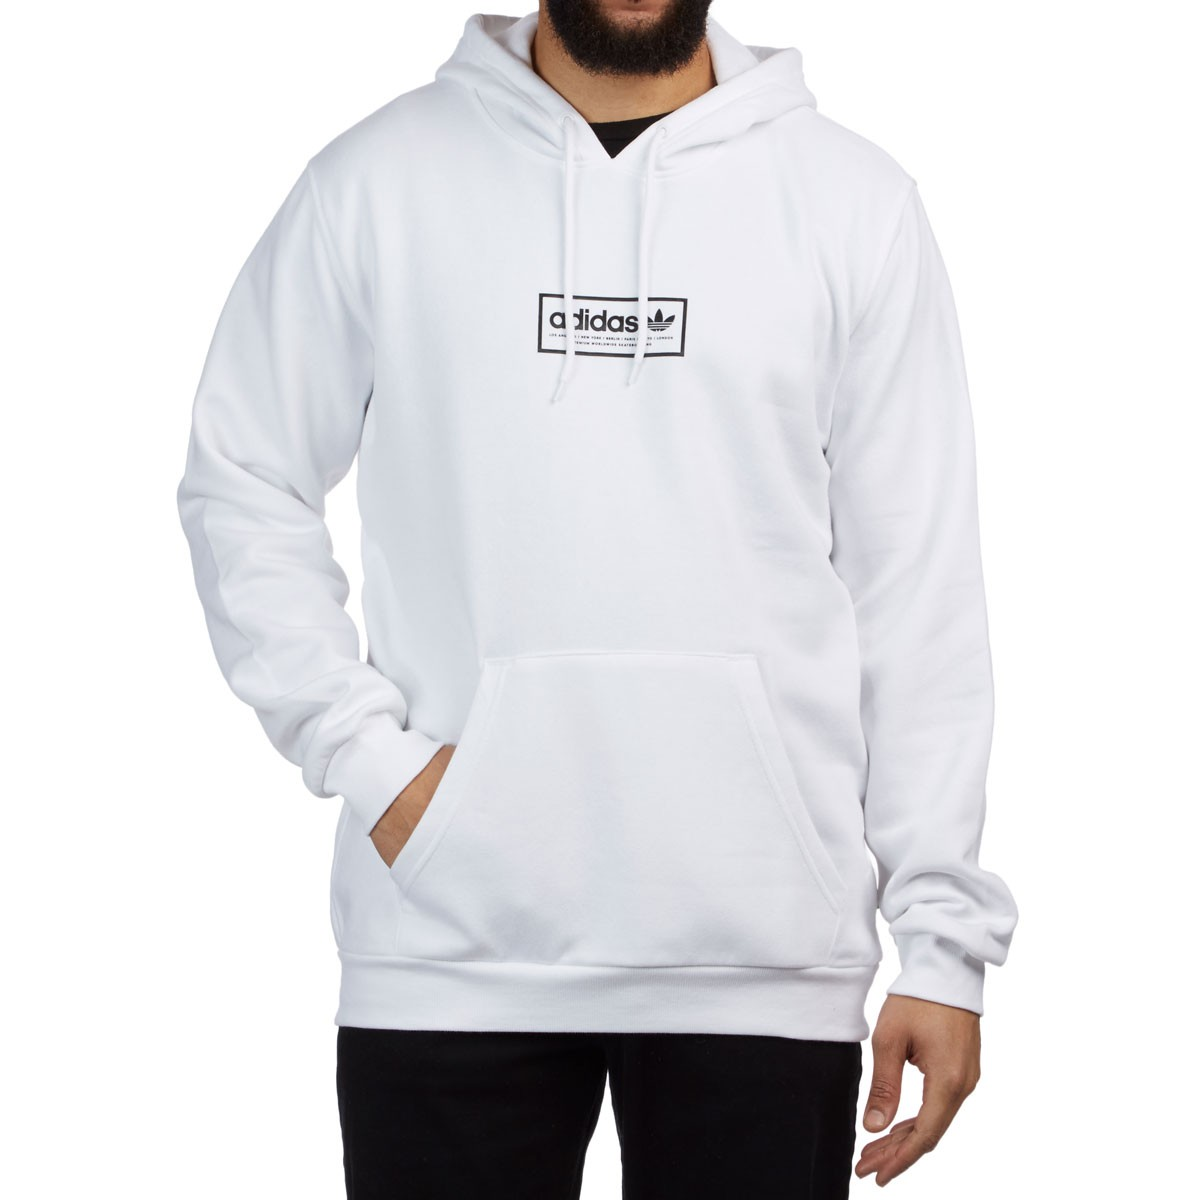 Adidas Out Adidas Out Spell Spell Whiteblack Adidas Spell Whiteblack Hoodie Hoodie wTaB11